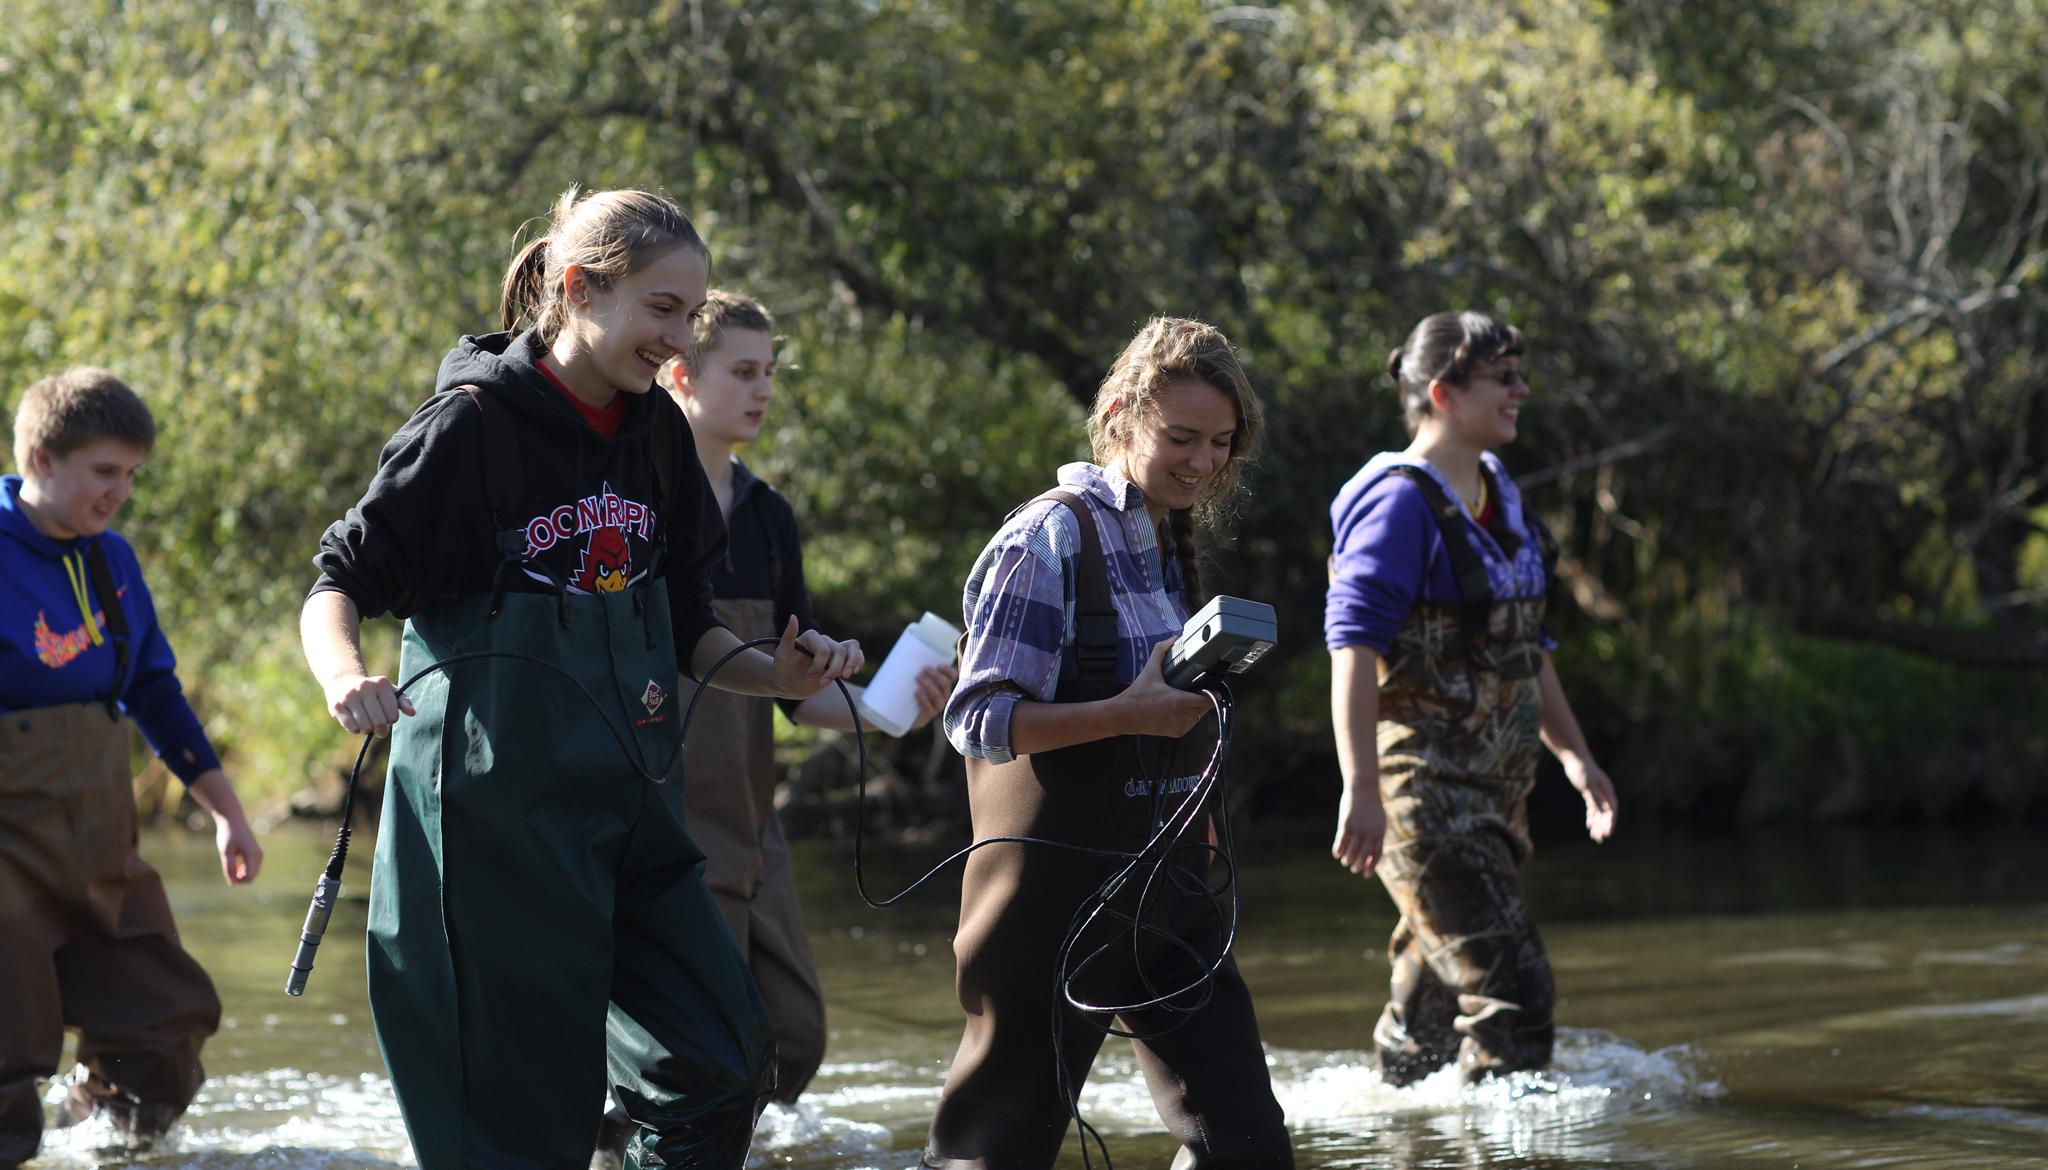 Students wearing waders walking in a stream